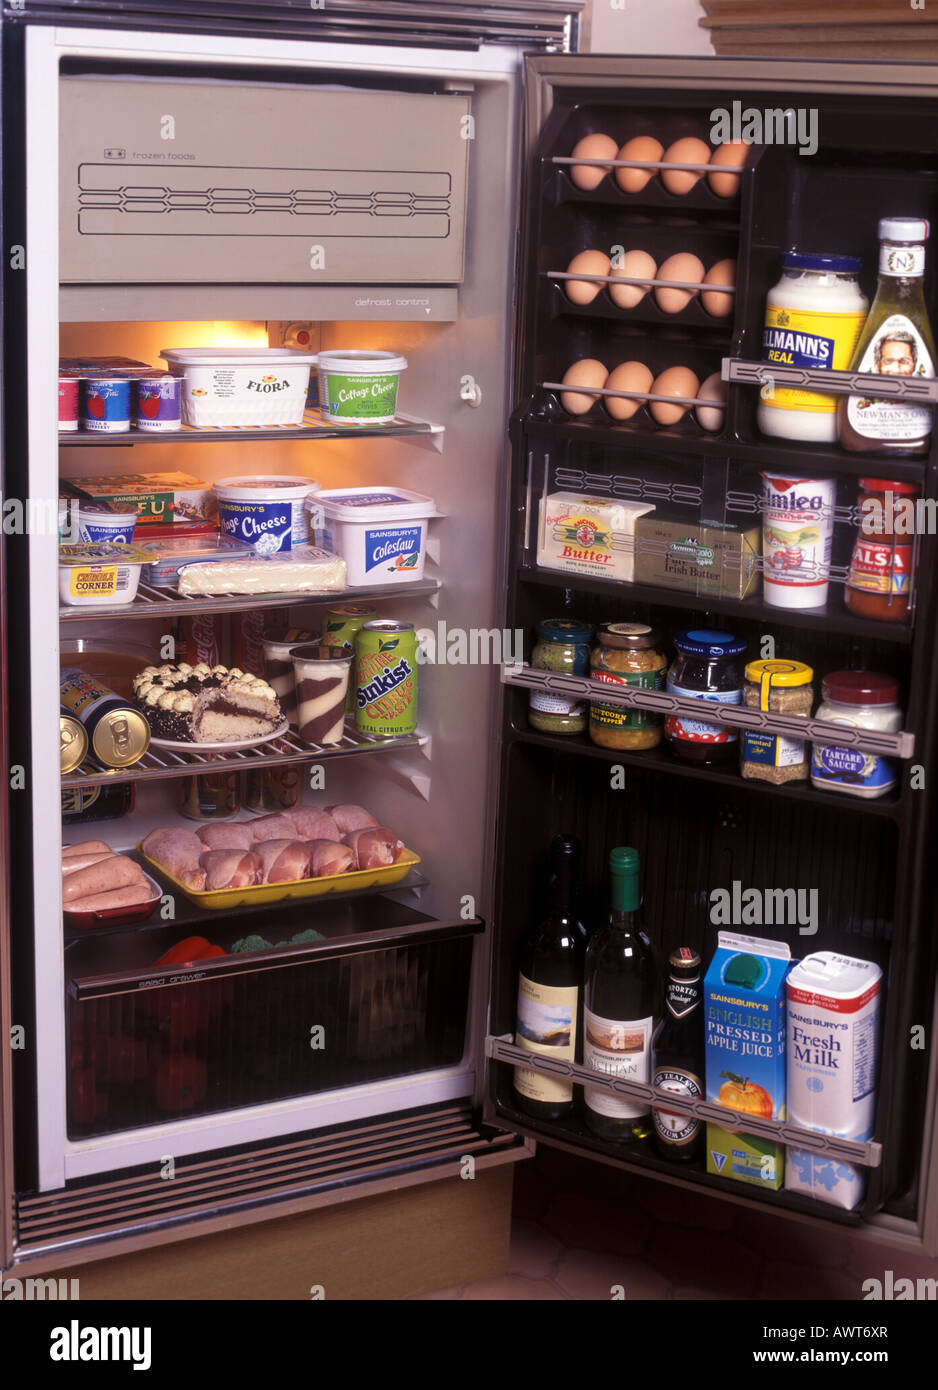 typical food products correctly stored in a refrigerator - Stock Image